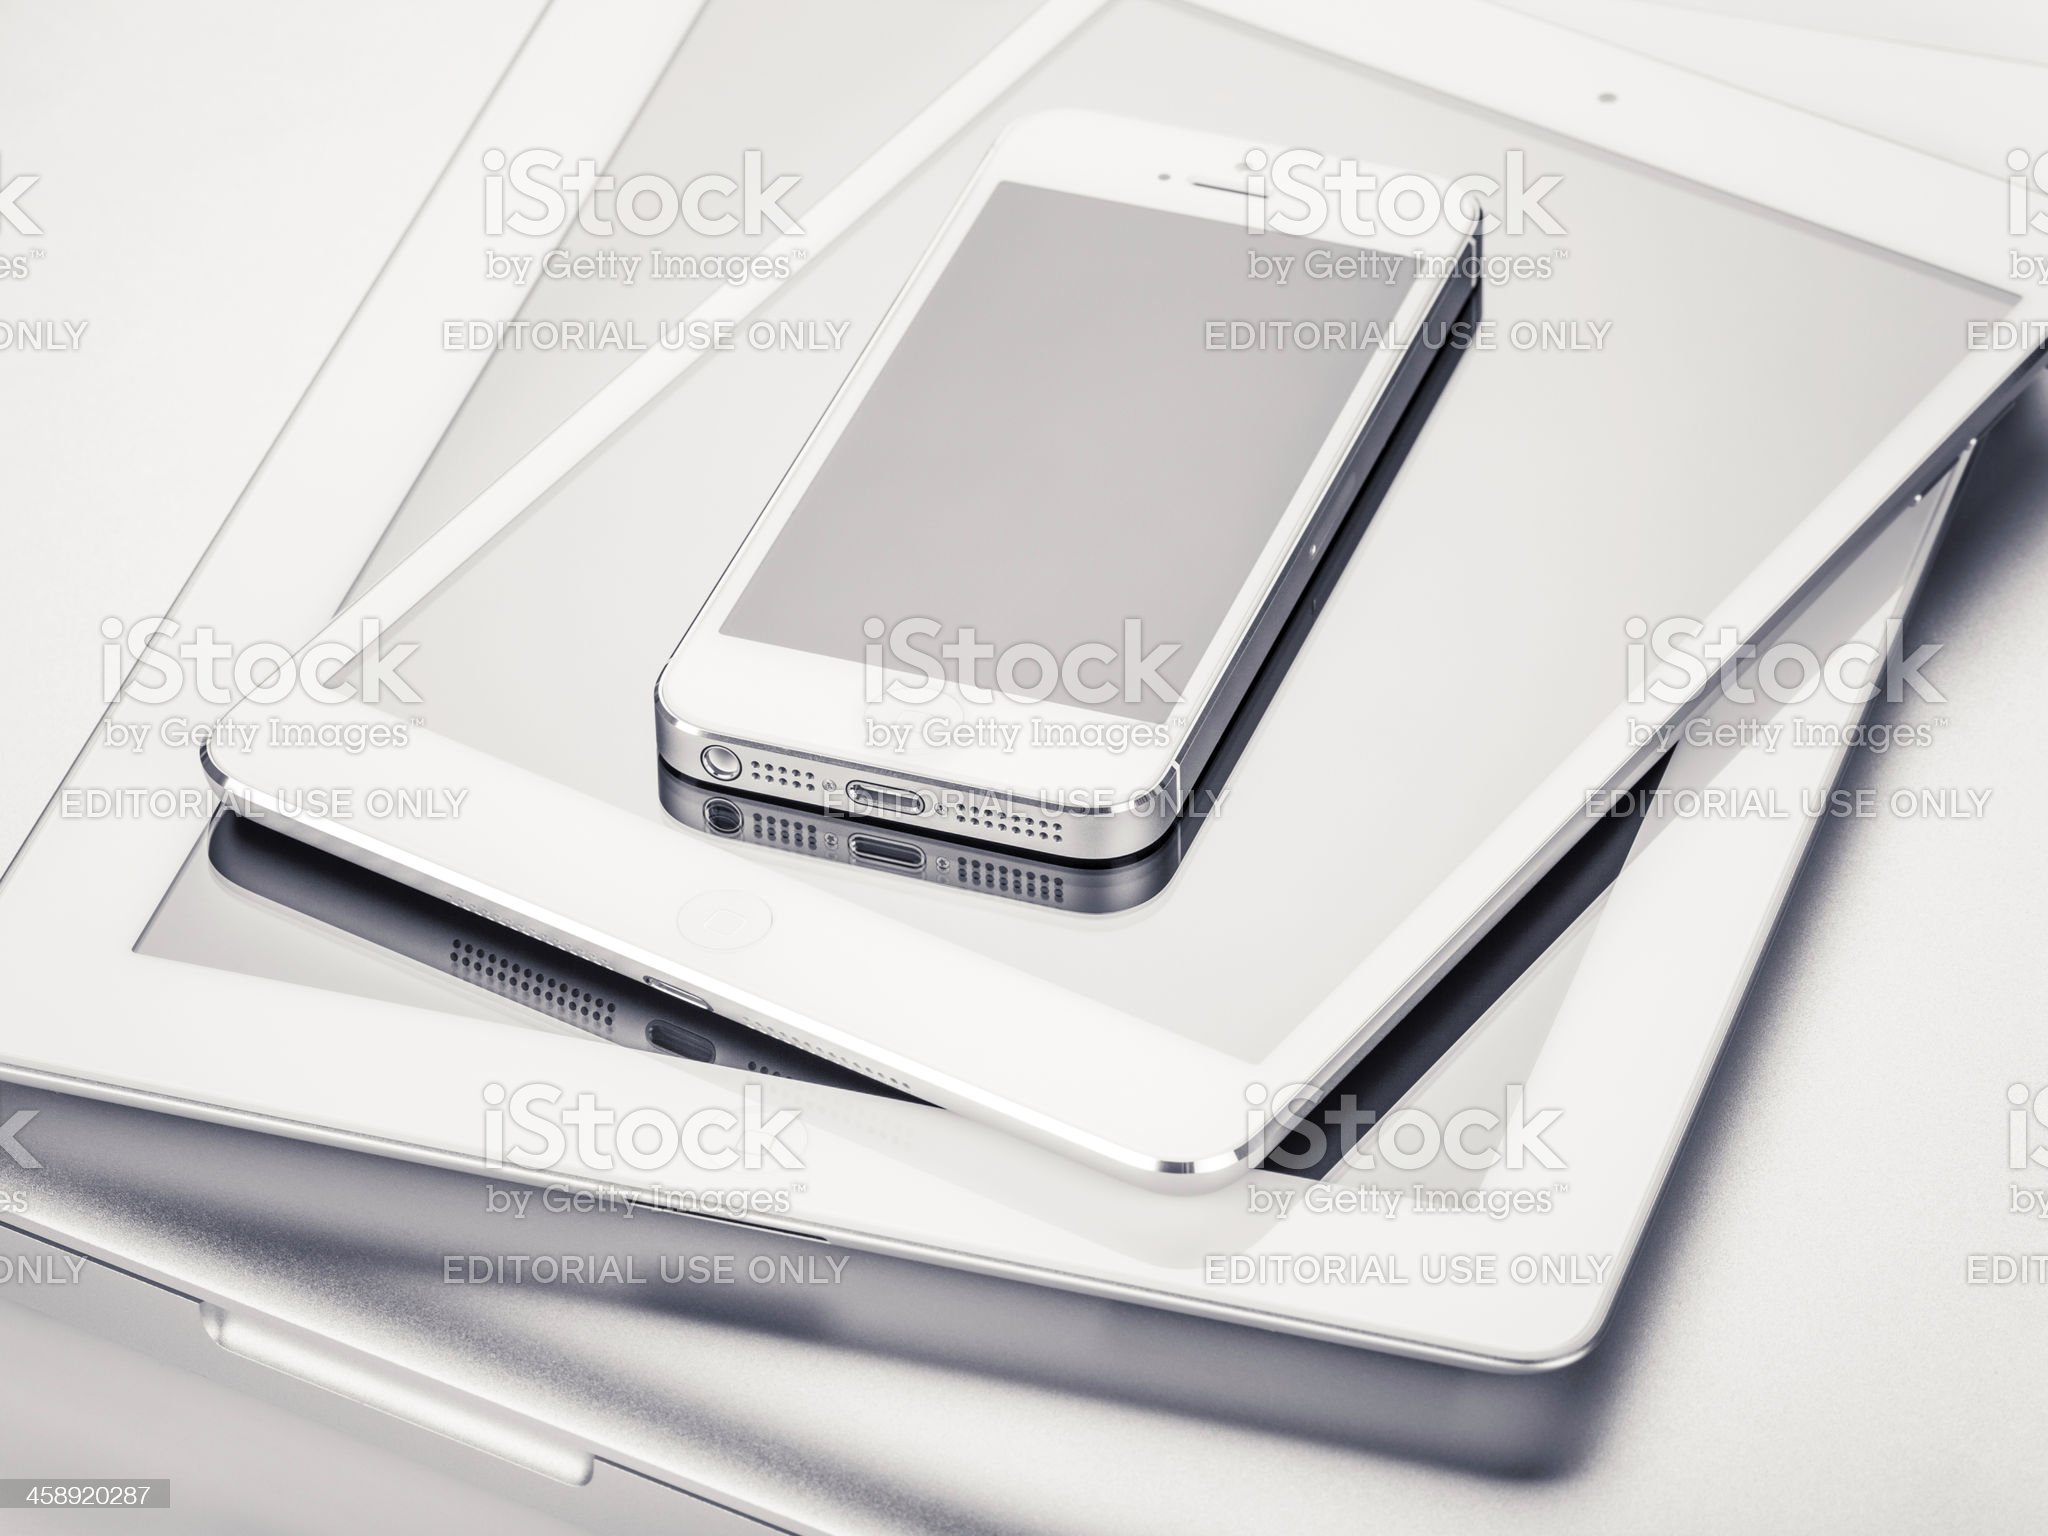 Apple Products (Isolated on White) royalty-free stock photo